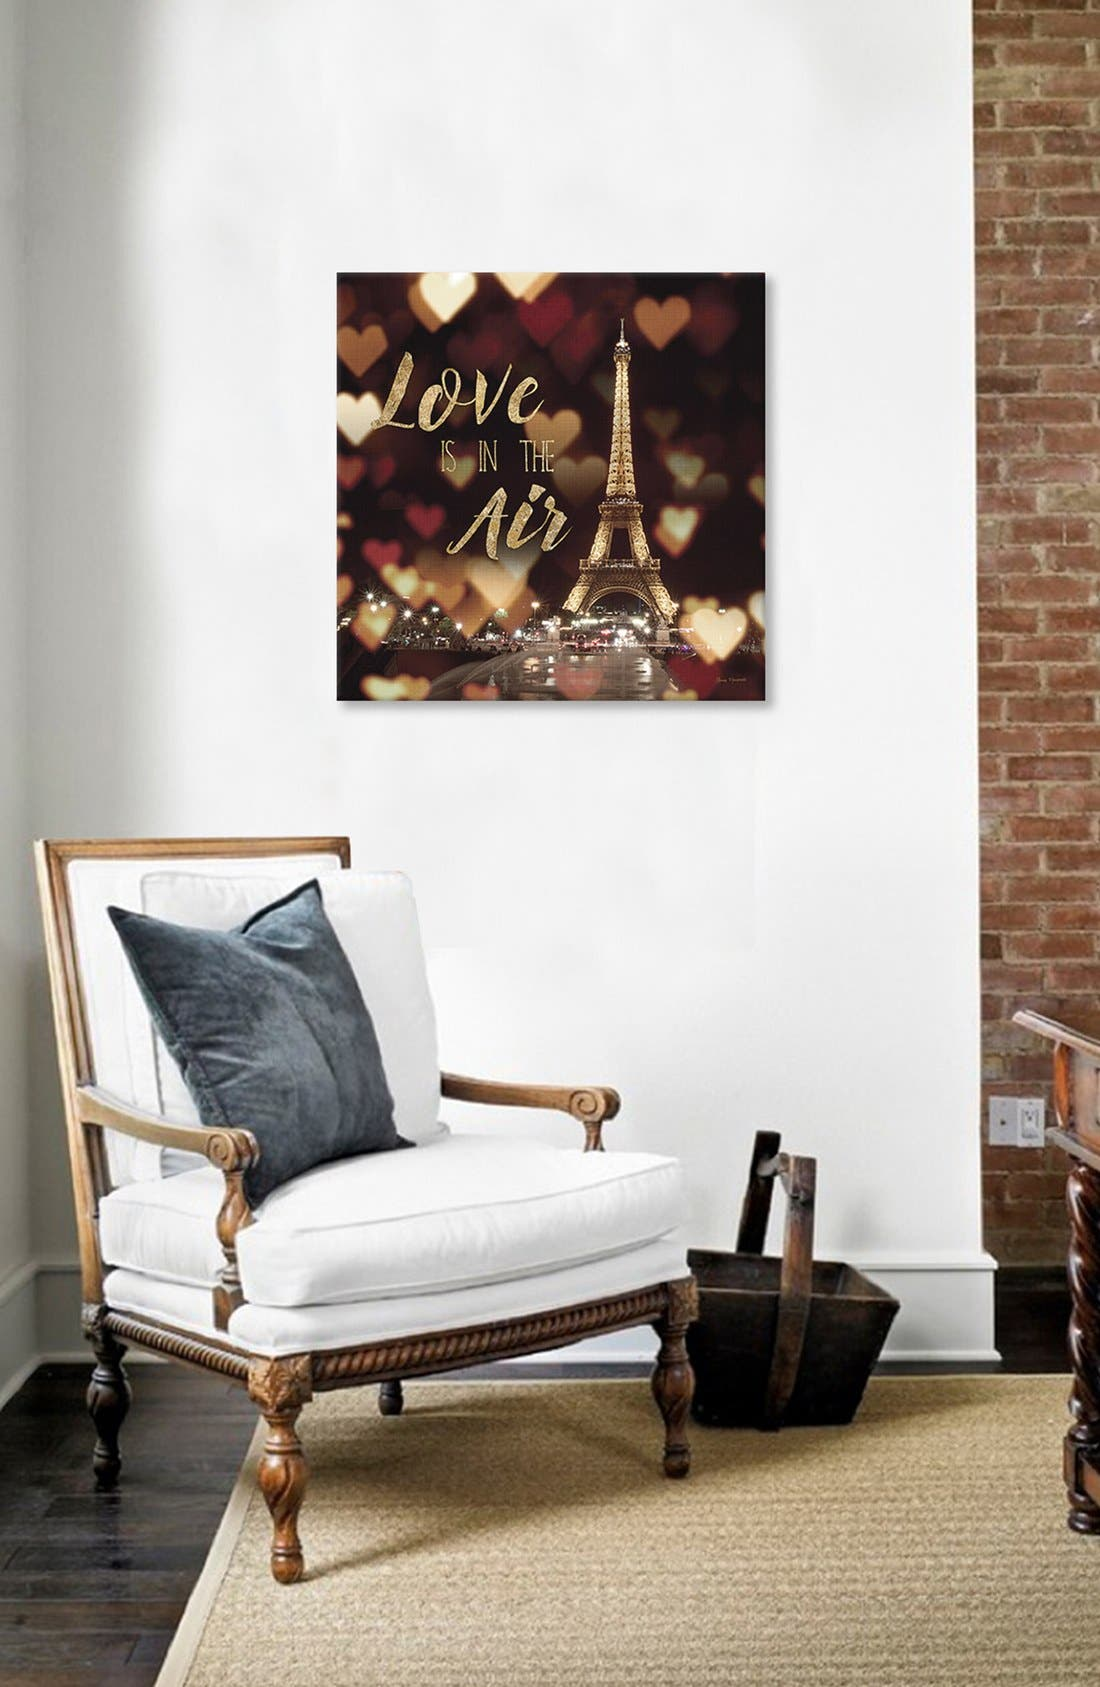 'Love is in the Air' Giclée Print Canvas Art,                             Alternate thumbnail 2, color,                             001